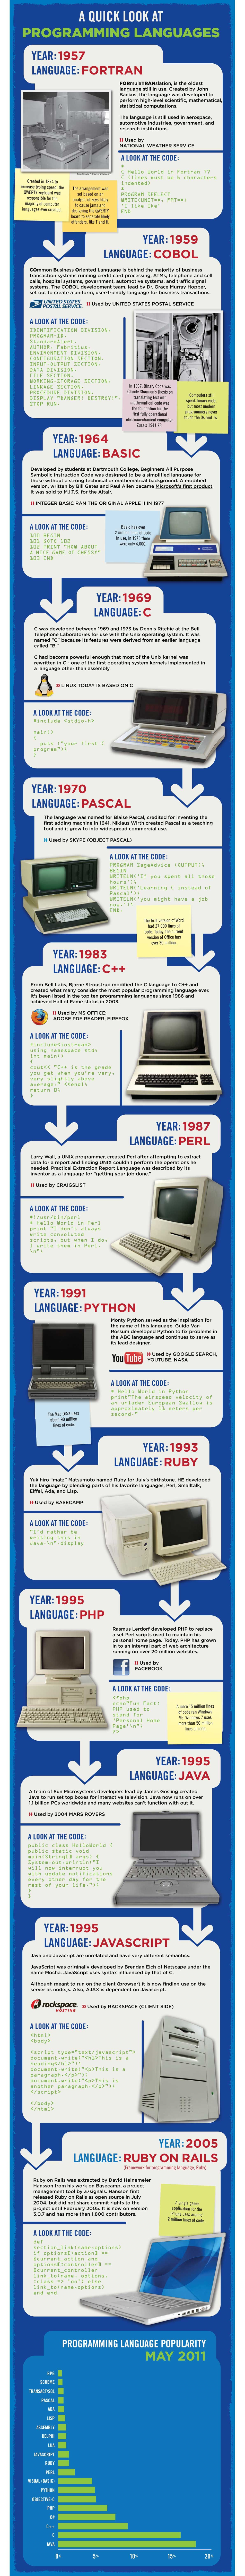 A Quick look At Programming Languages [INFOGRAPHIC]